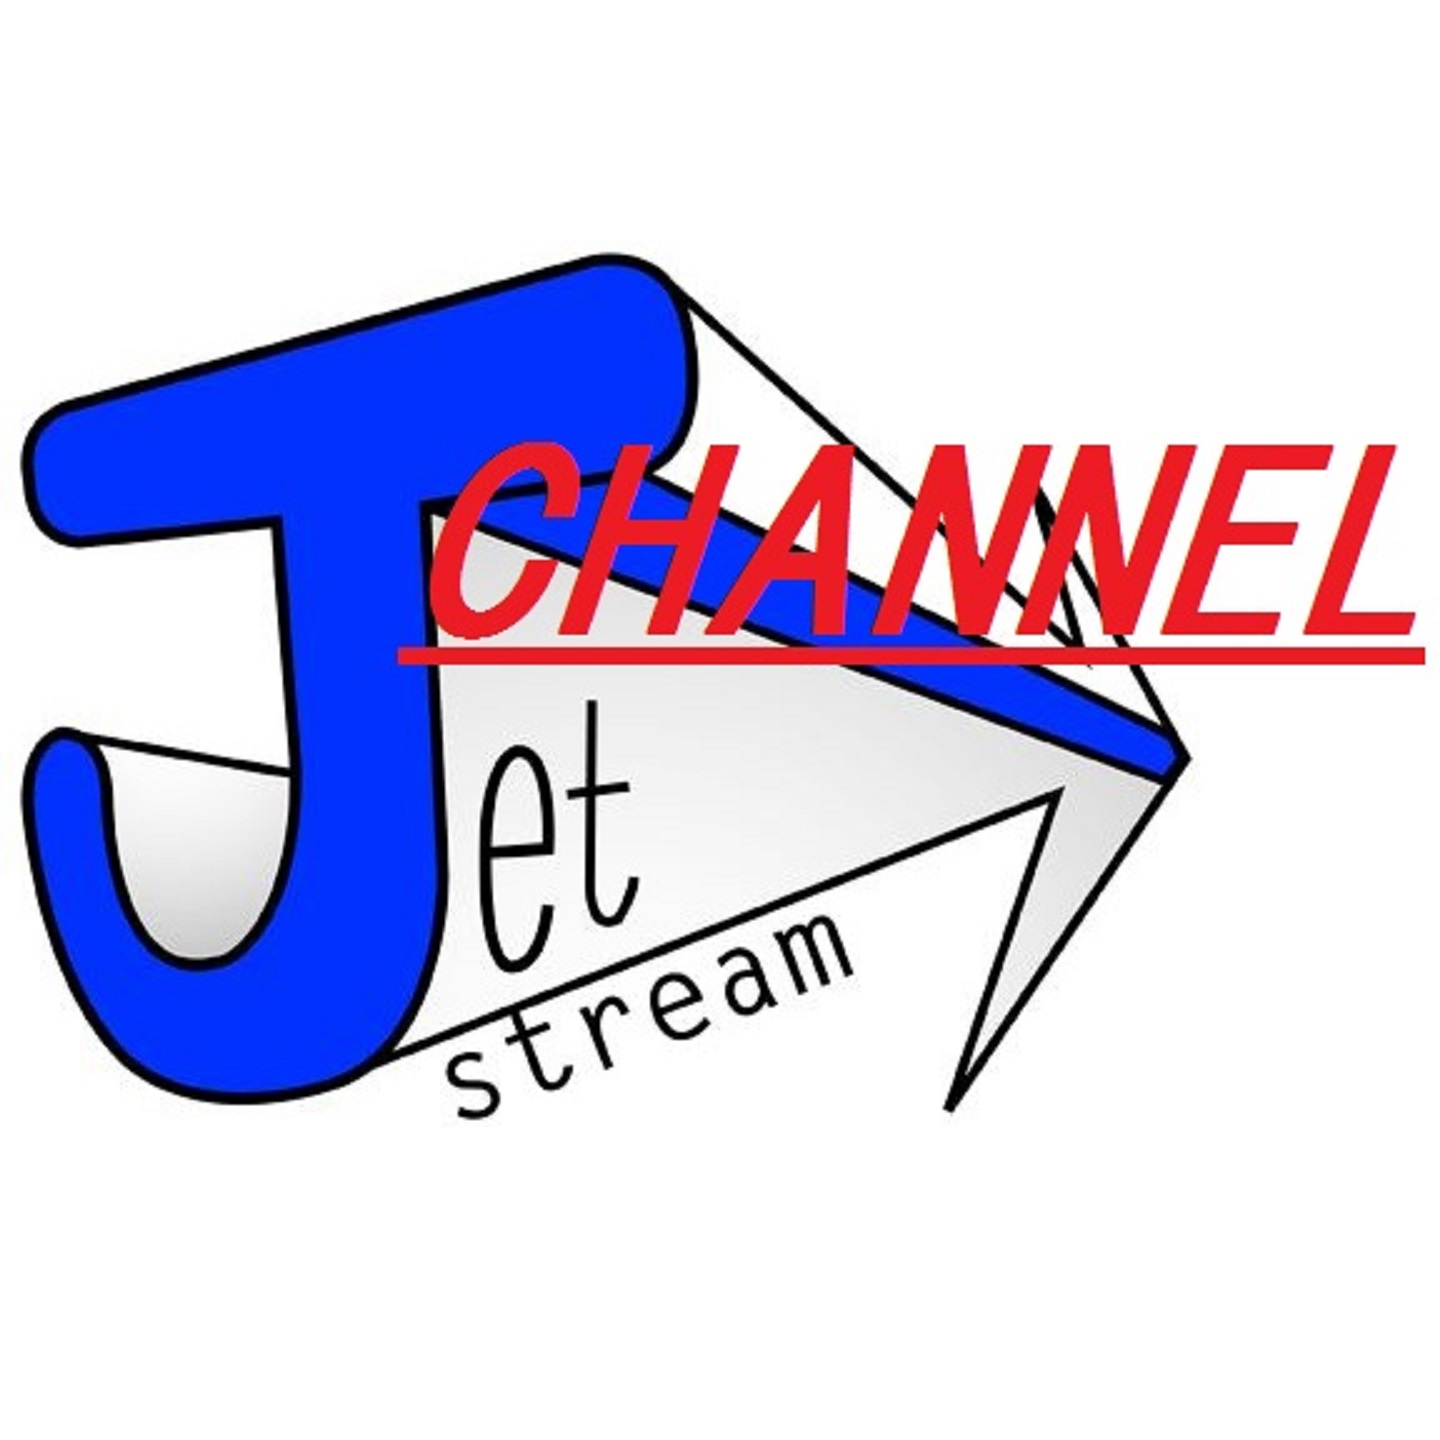 Jetstream CHANNEL:『.J』